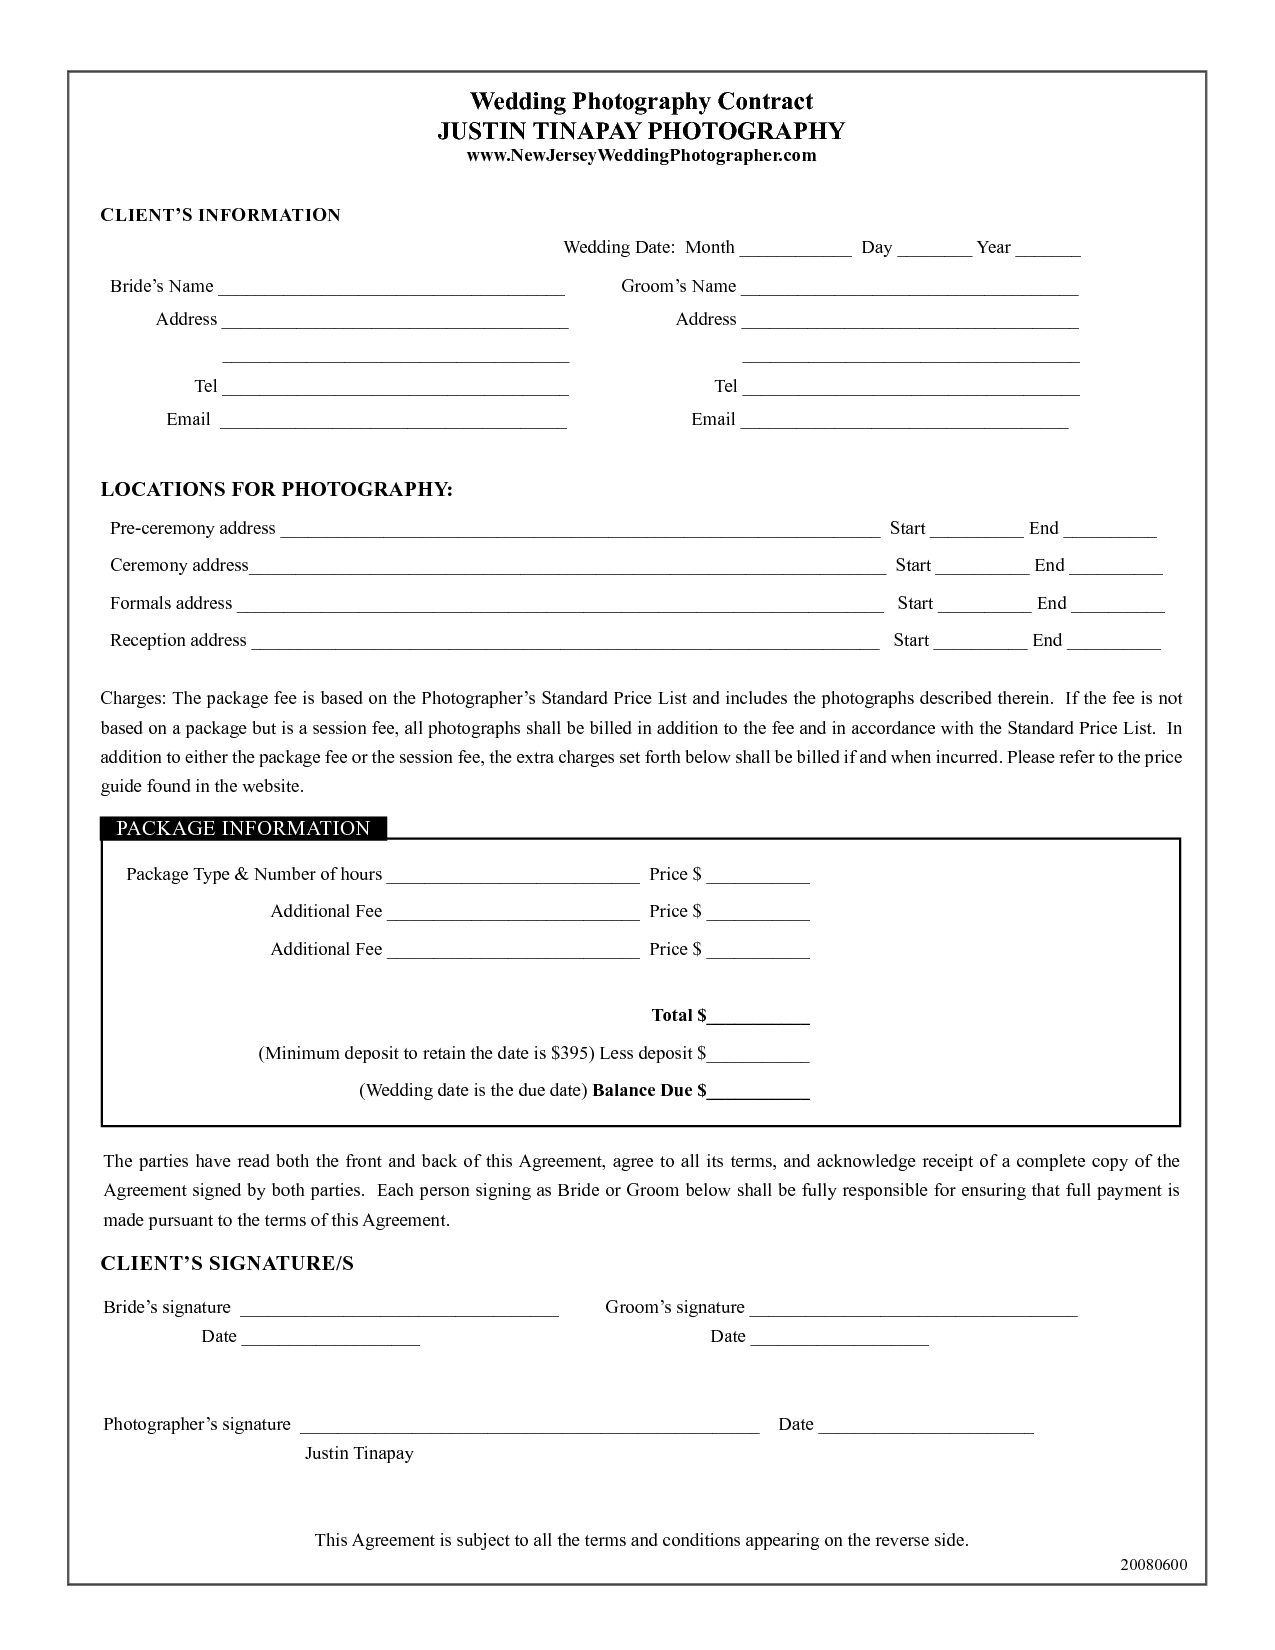 Photography Contract Template Wedding Justin Tinapay